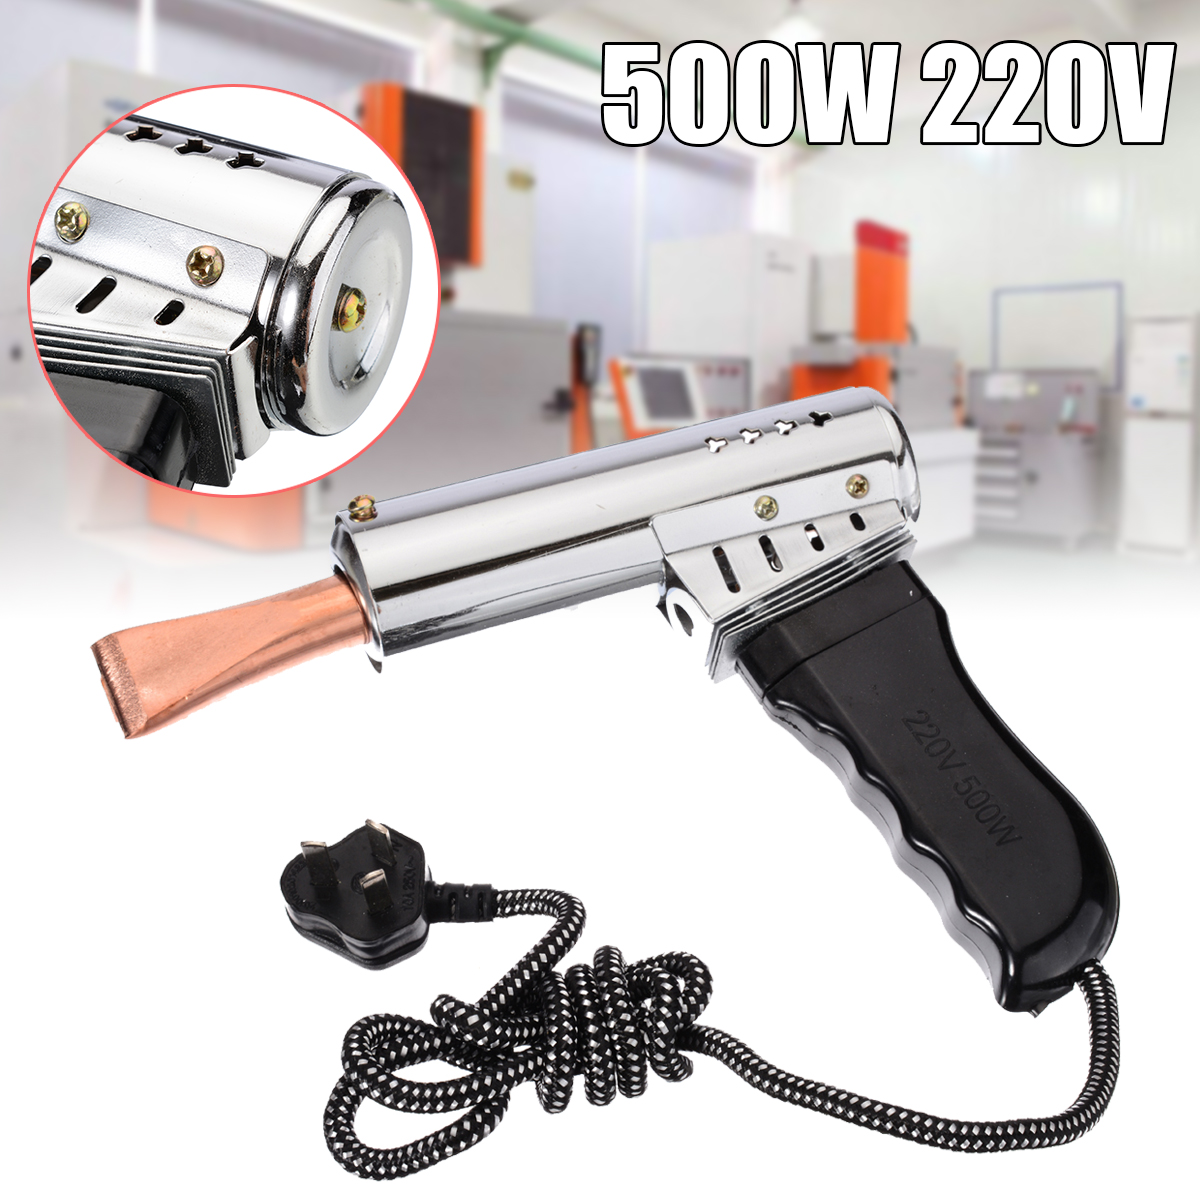 1pc 220V High Power Chisel Tip Soldering Iron Chisel Tip 500W Electric Soldering Iron Manufacturing Power Tool